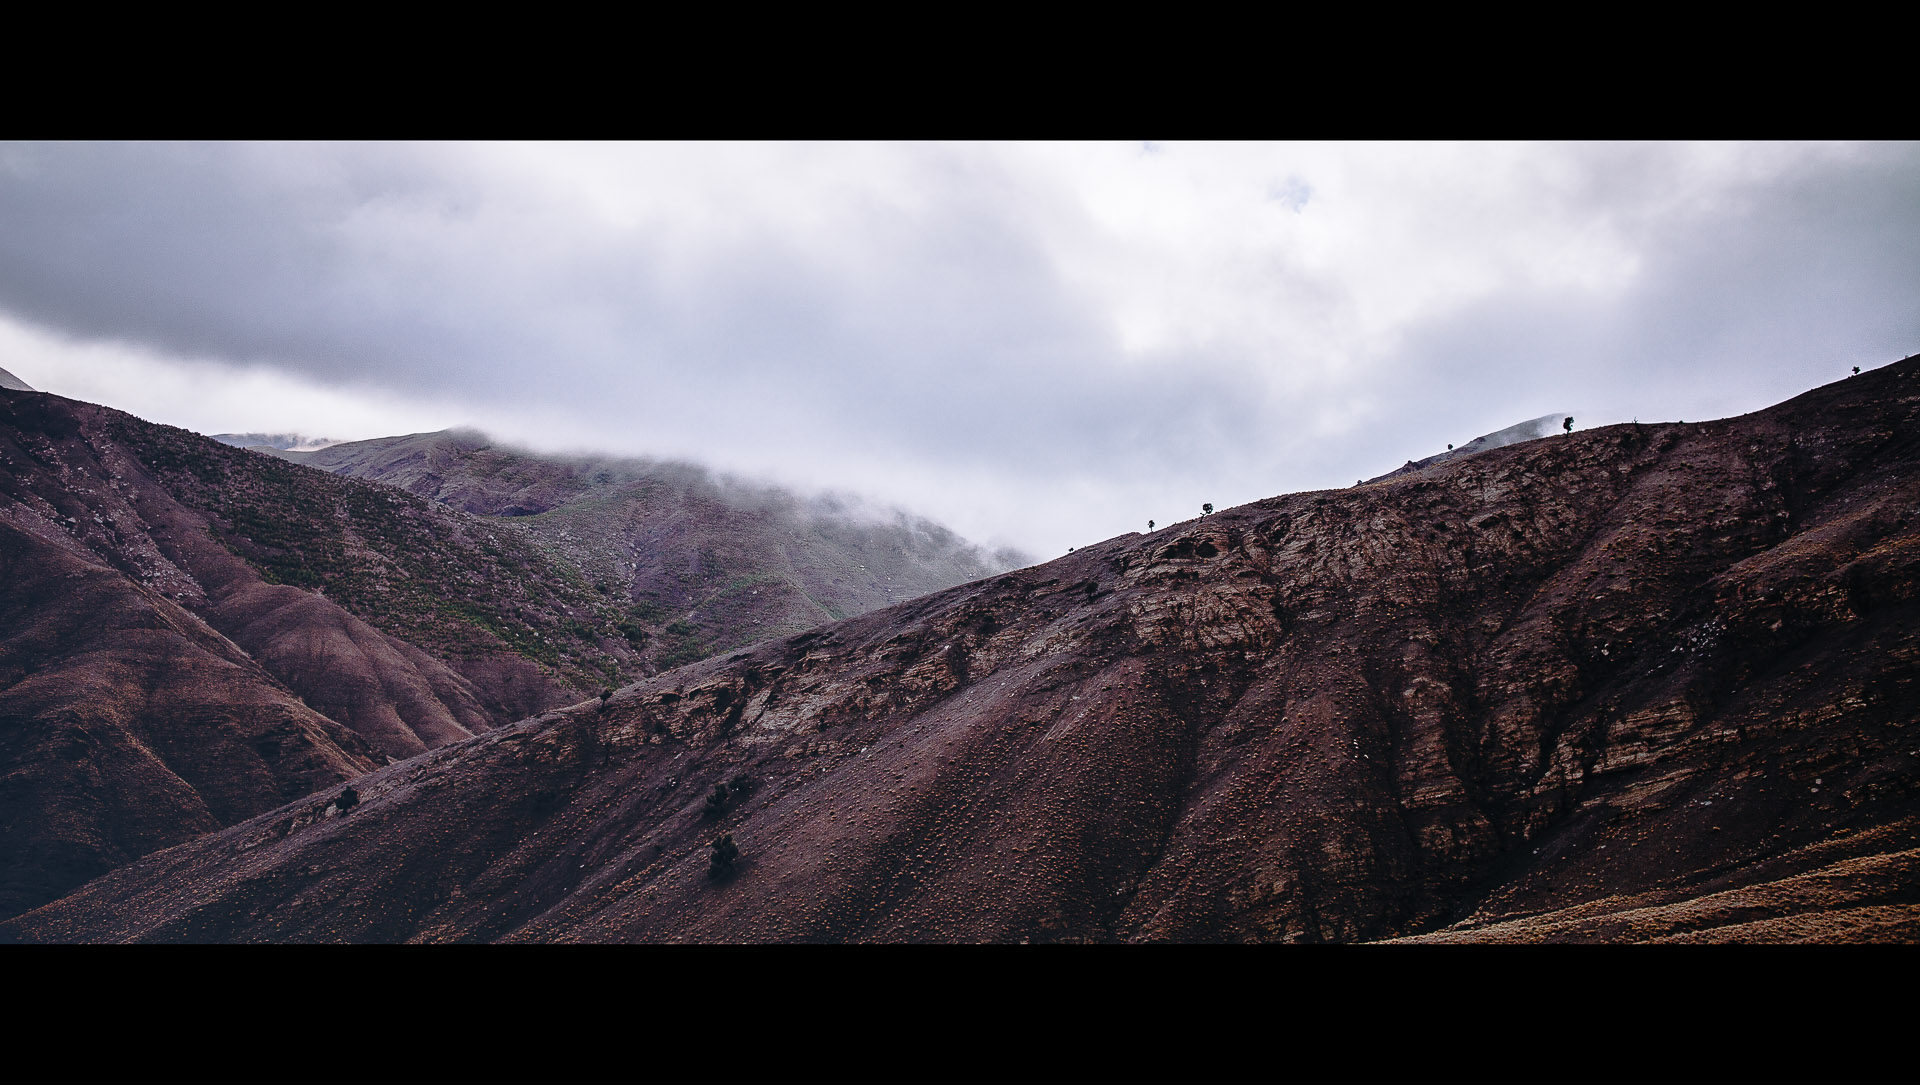 A Cinematic Journey through Morocco: After the storm in the High